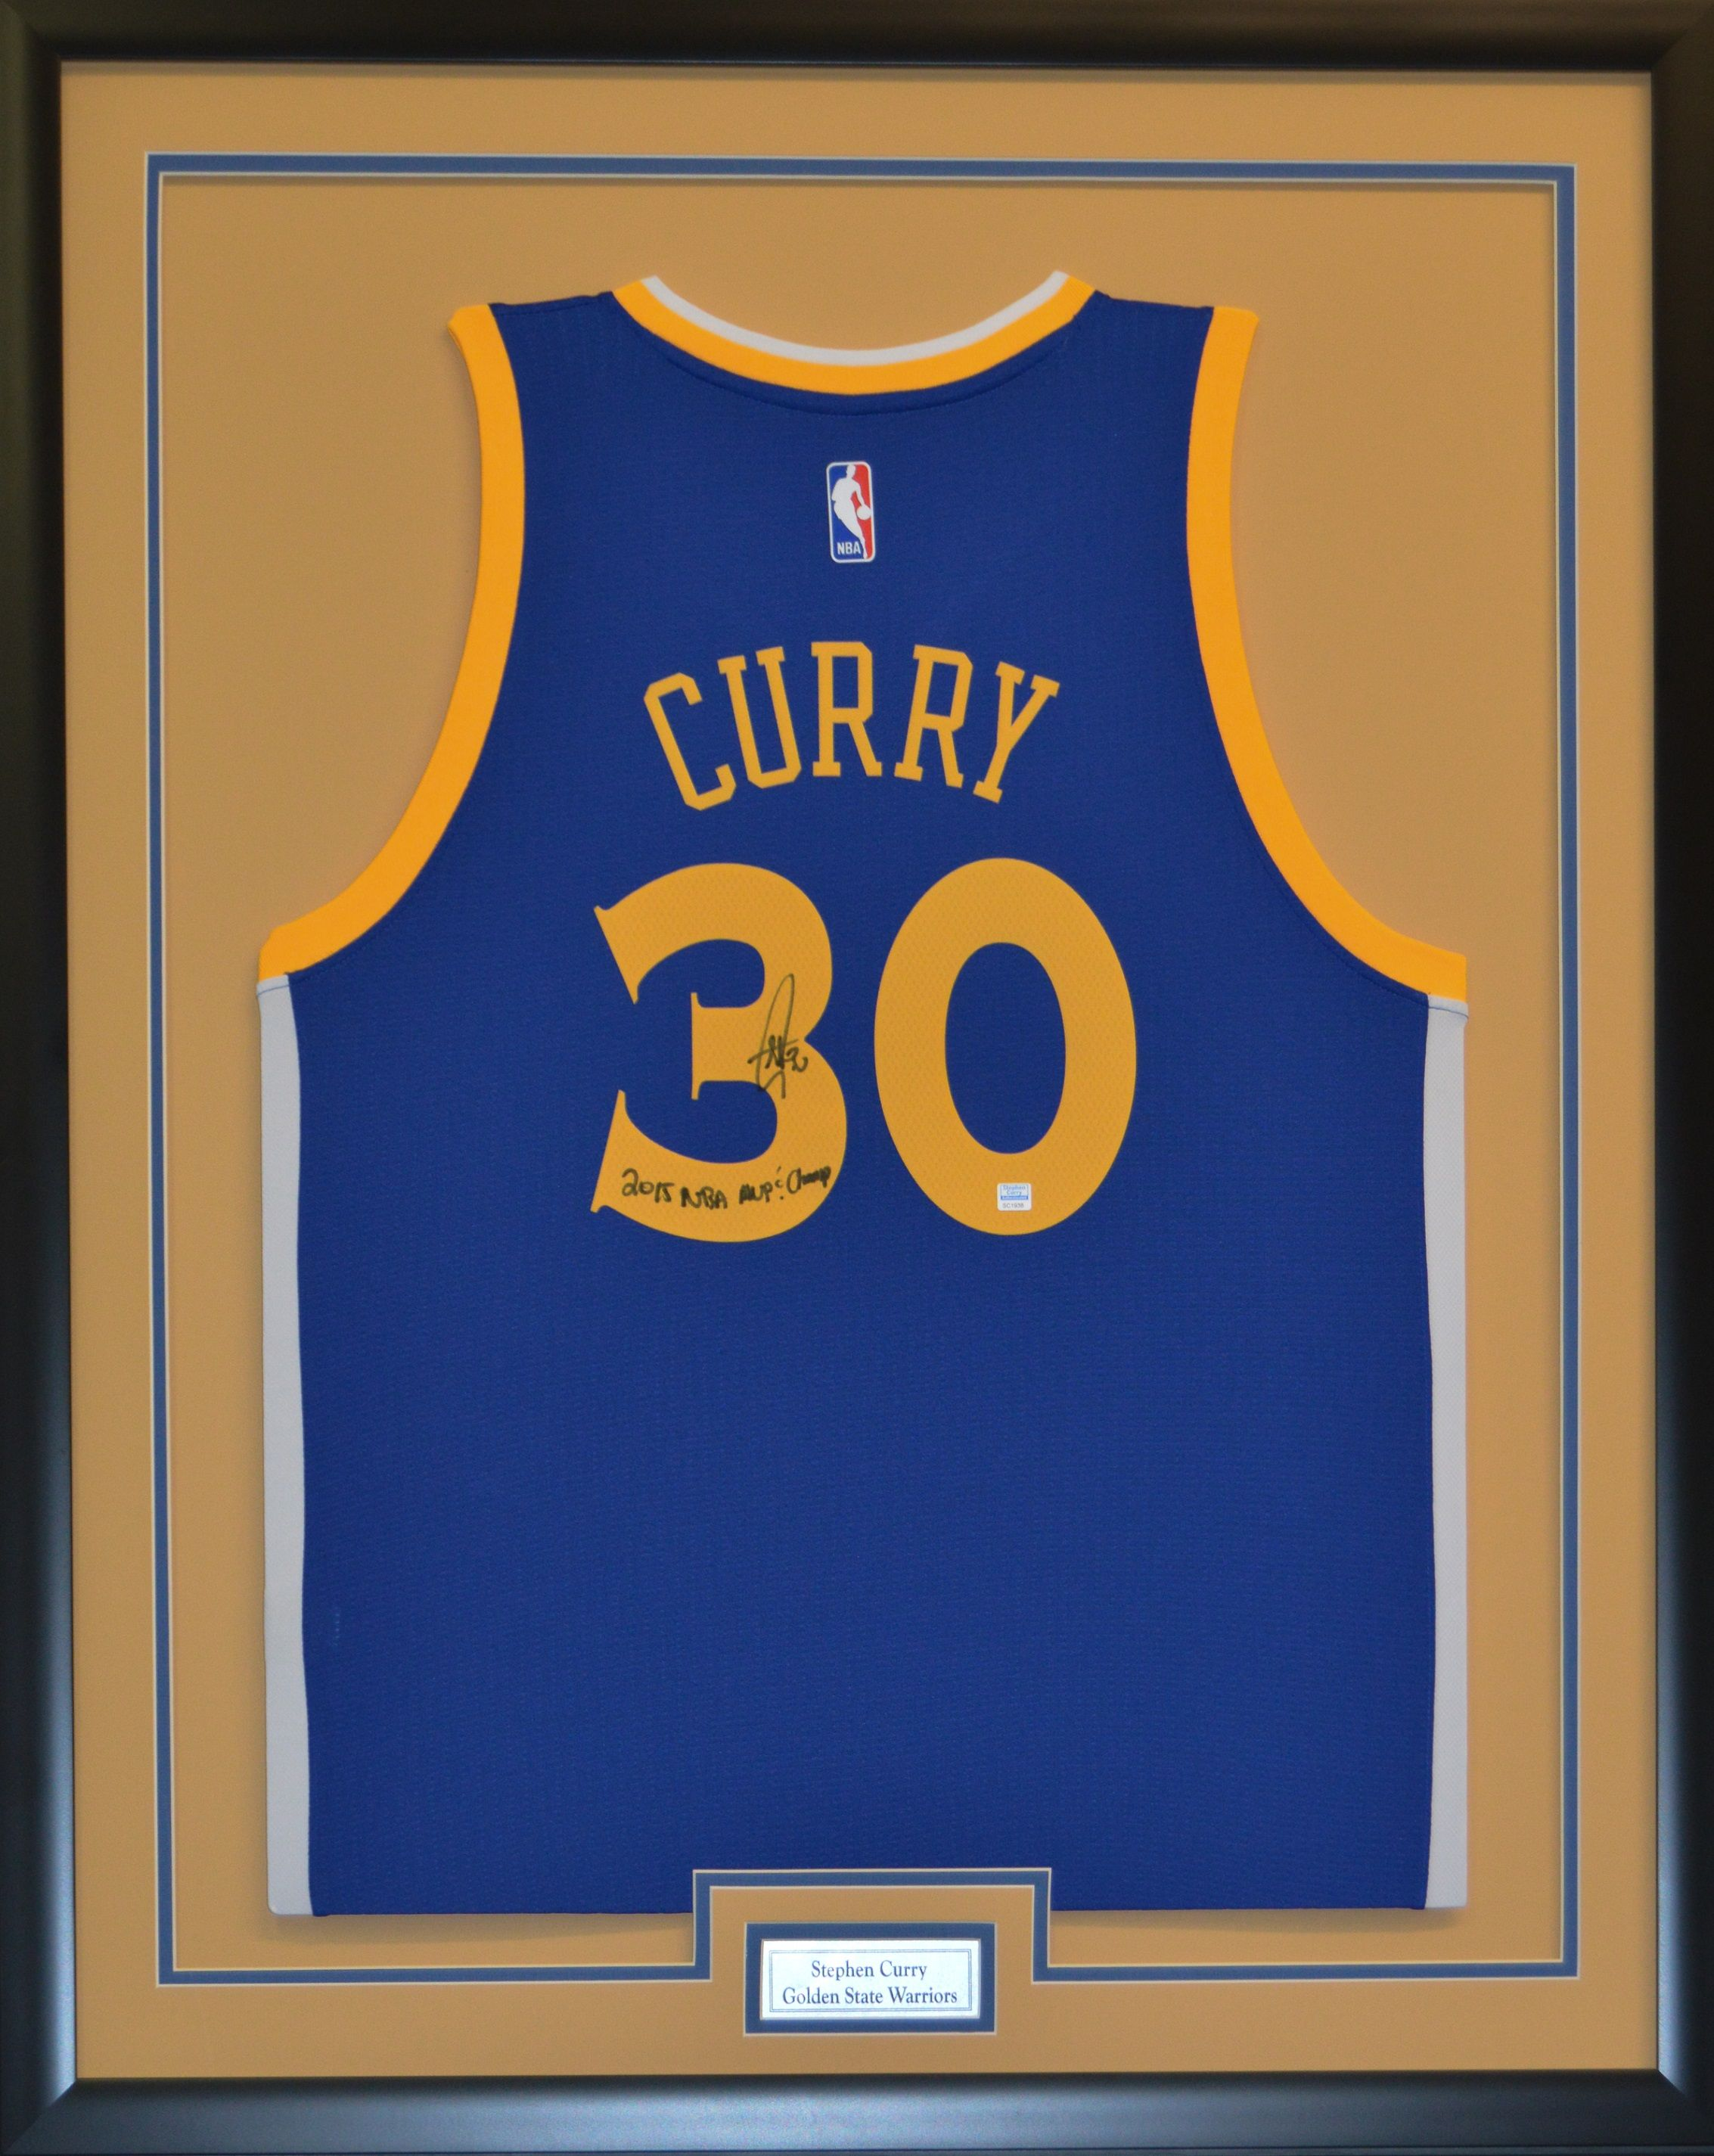 653e8e6d1 Framed Jersey of 2014 MVP  StephCurry of the  GoldenStateWarriors   FramedJersey  JerseyFraming